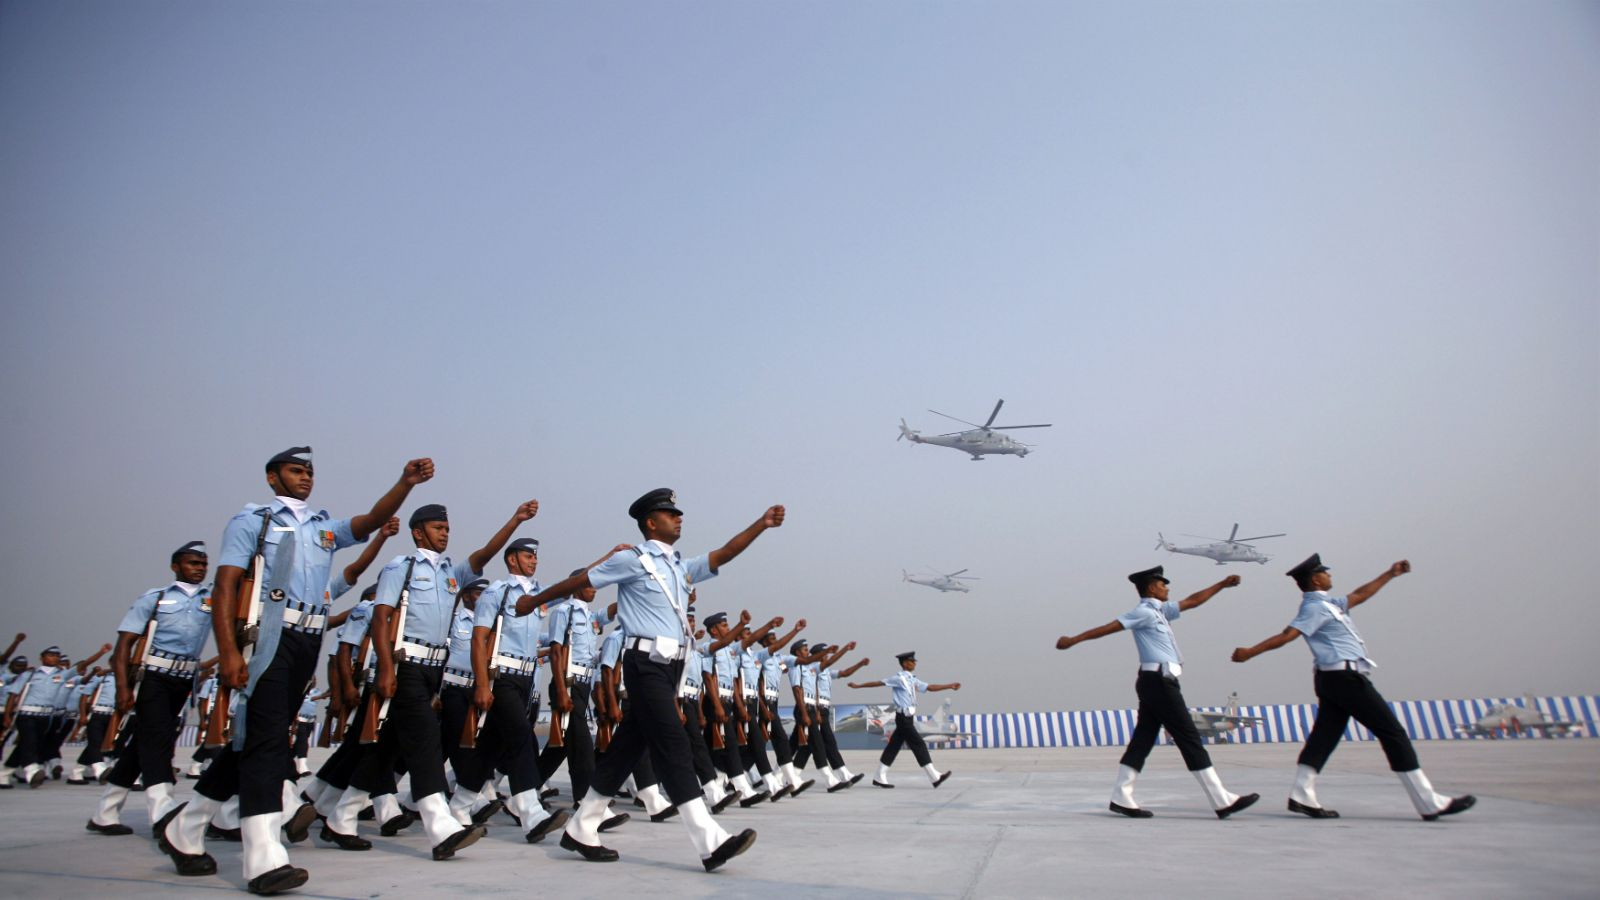 Indian Air Force (IAF) soldiers march during the Indian Air Force Day celebrations at the Hindon air force station on the outskirts of New Delhi October 8, 2010. The Indian Air Force celebrated its 78th anniversary on October 8.